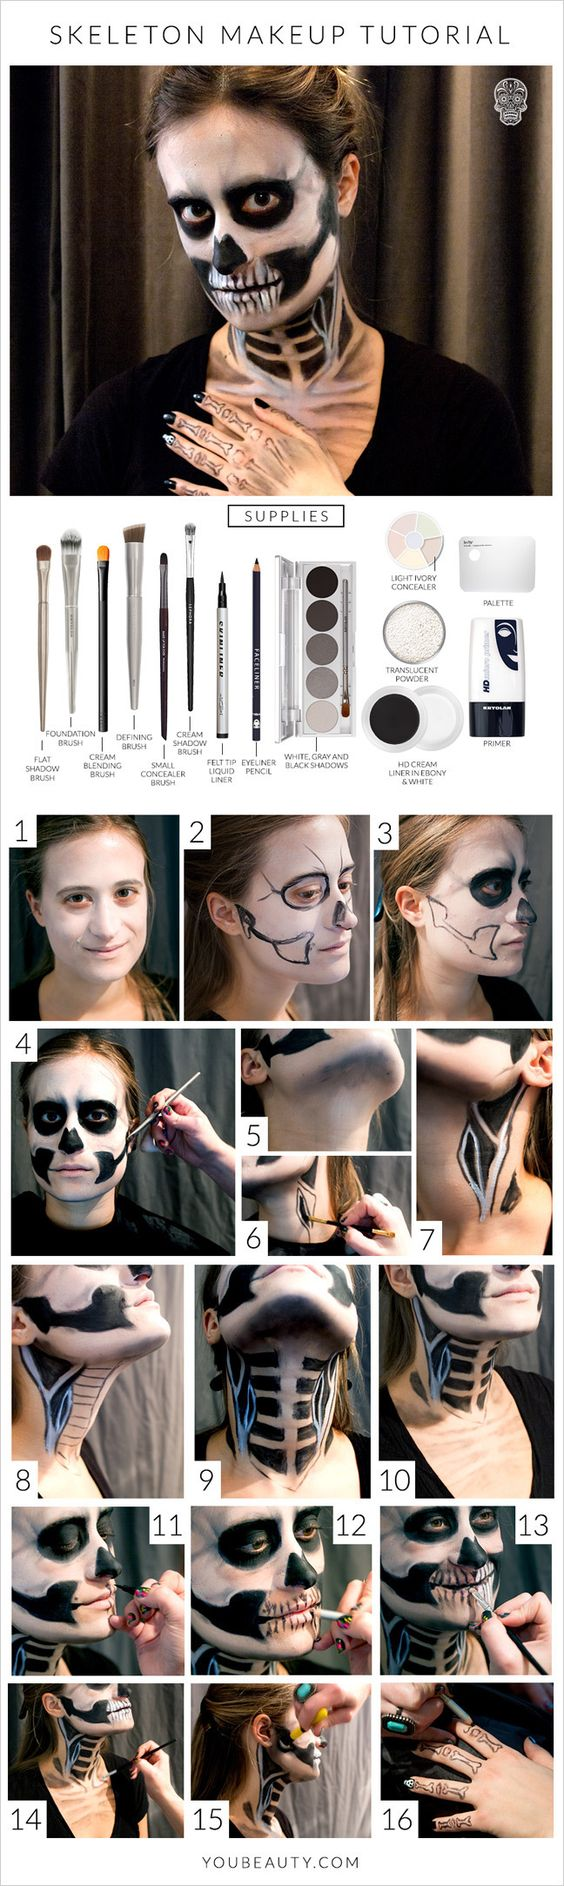 You Can Do This Halloween Skeleton Makeup Tutorial With Makeup You Already Own